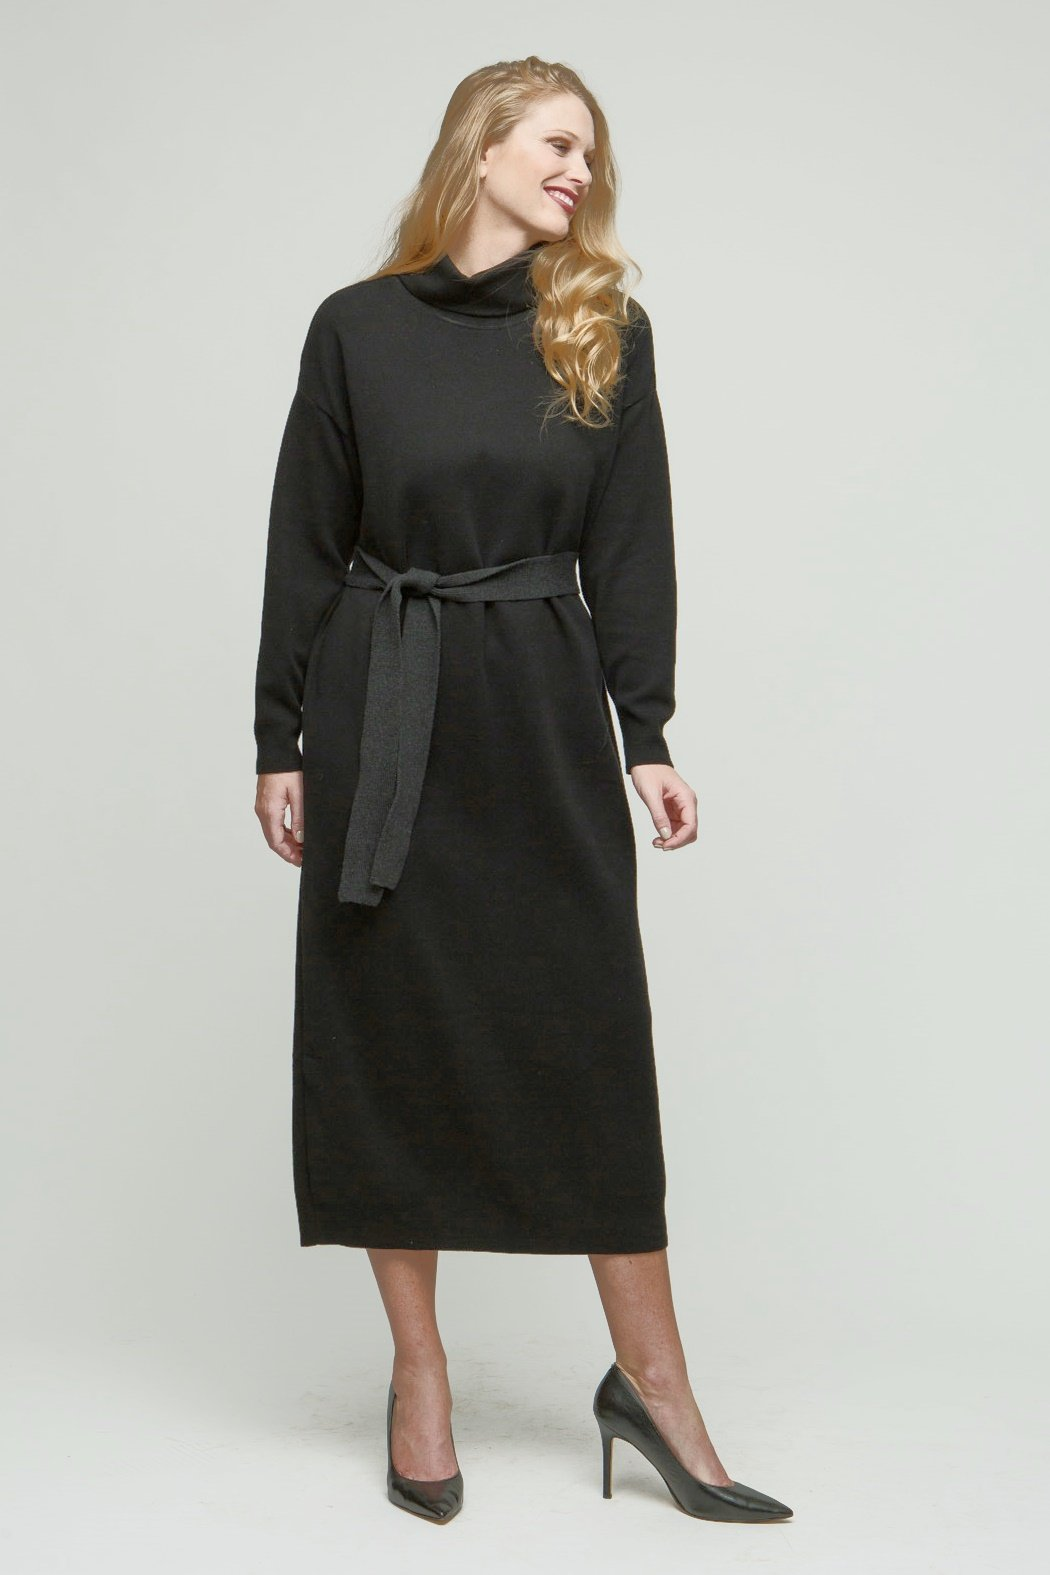 "50"" Long Sleeve Classic Turtleneck Dress"